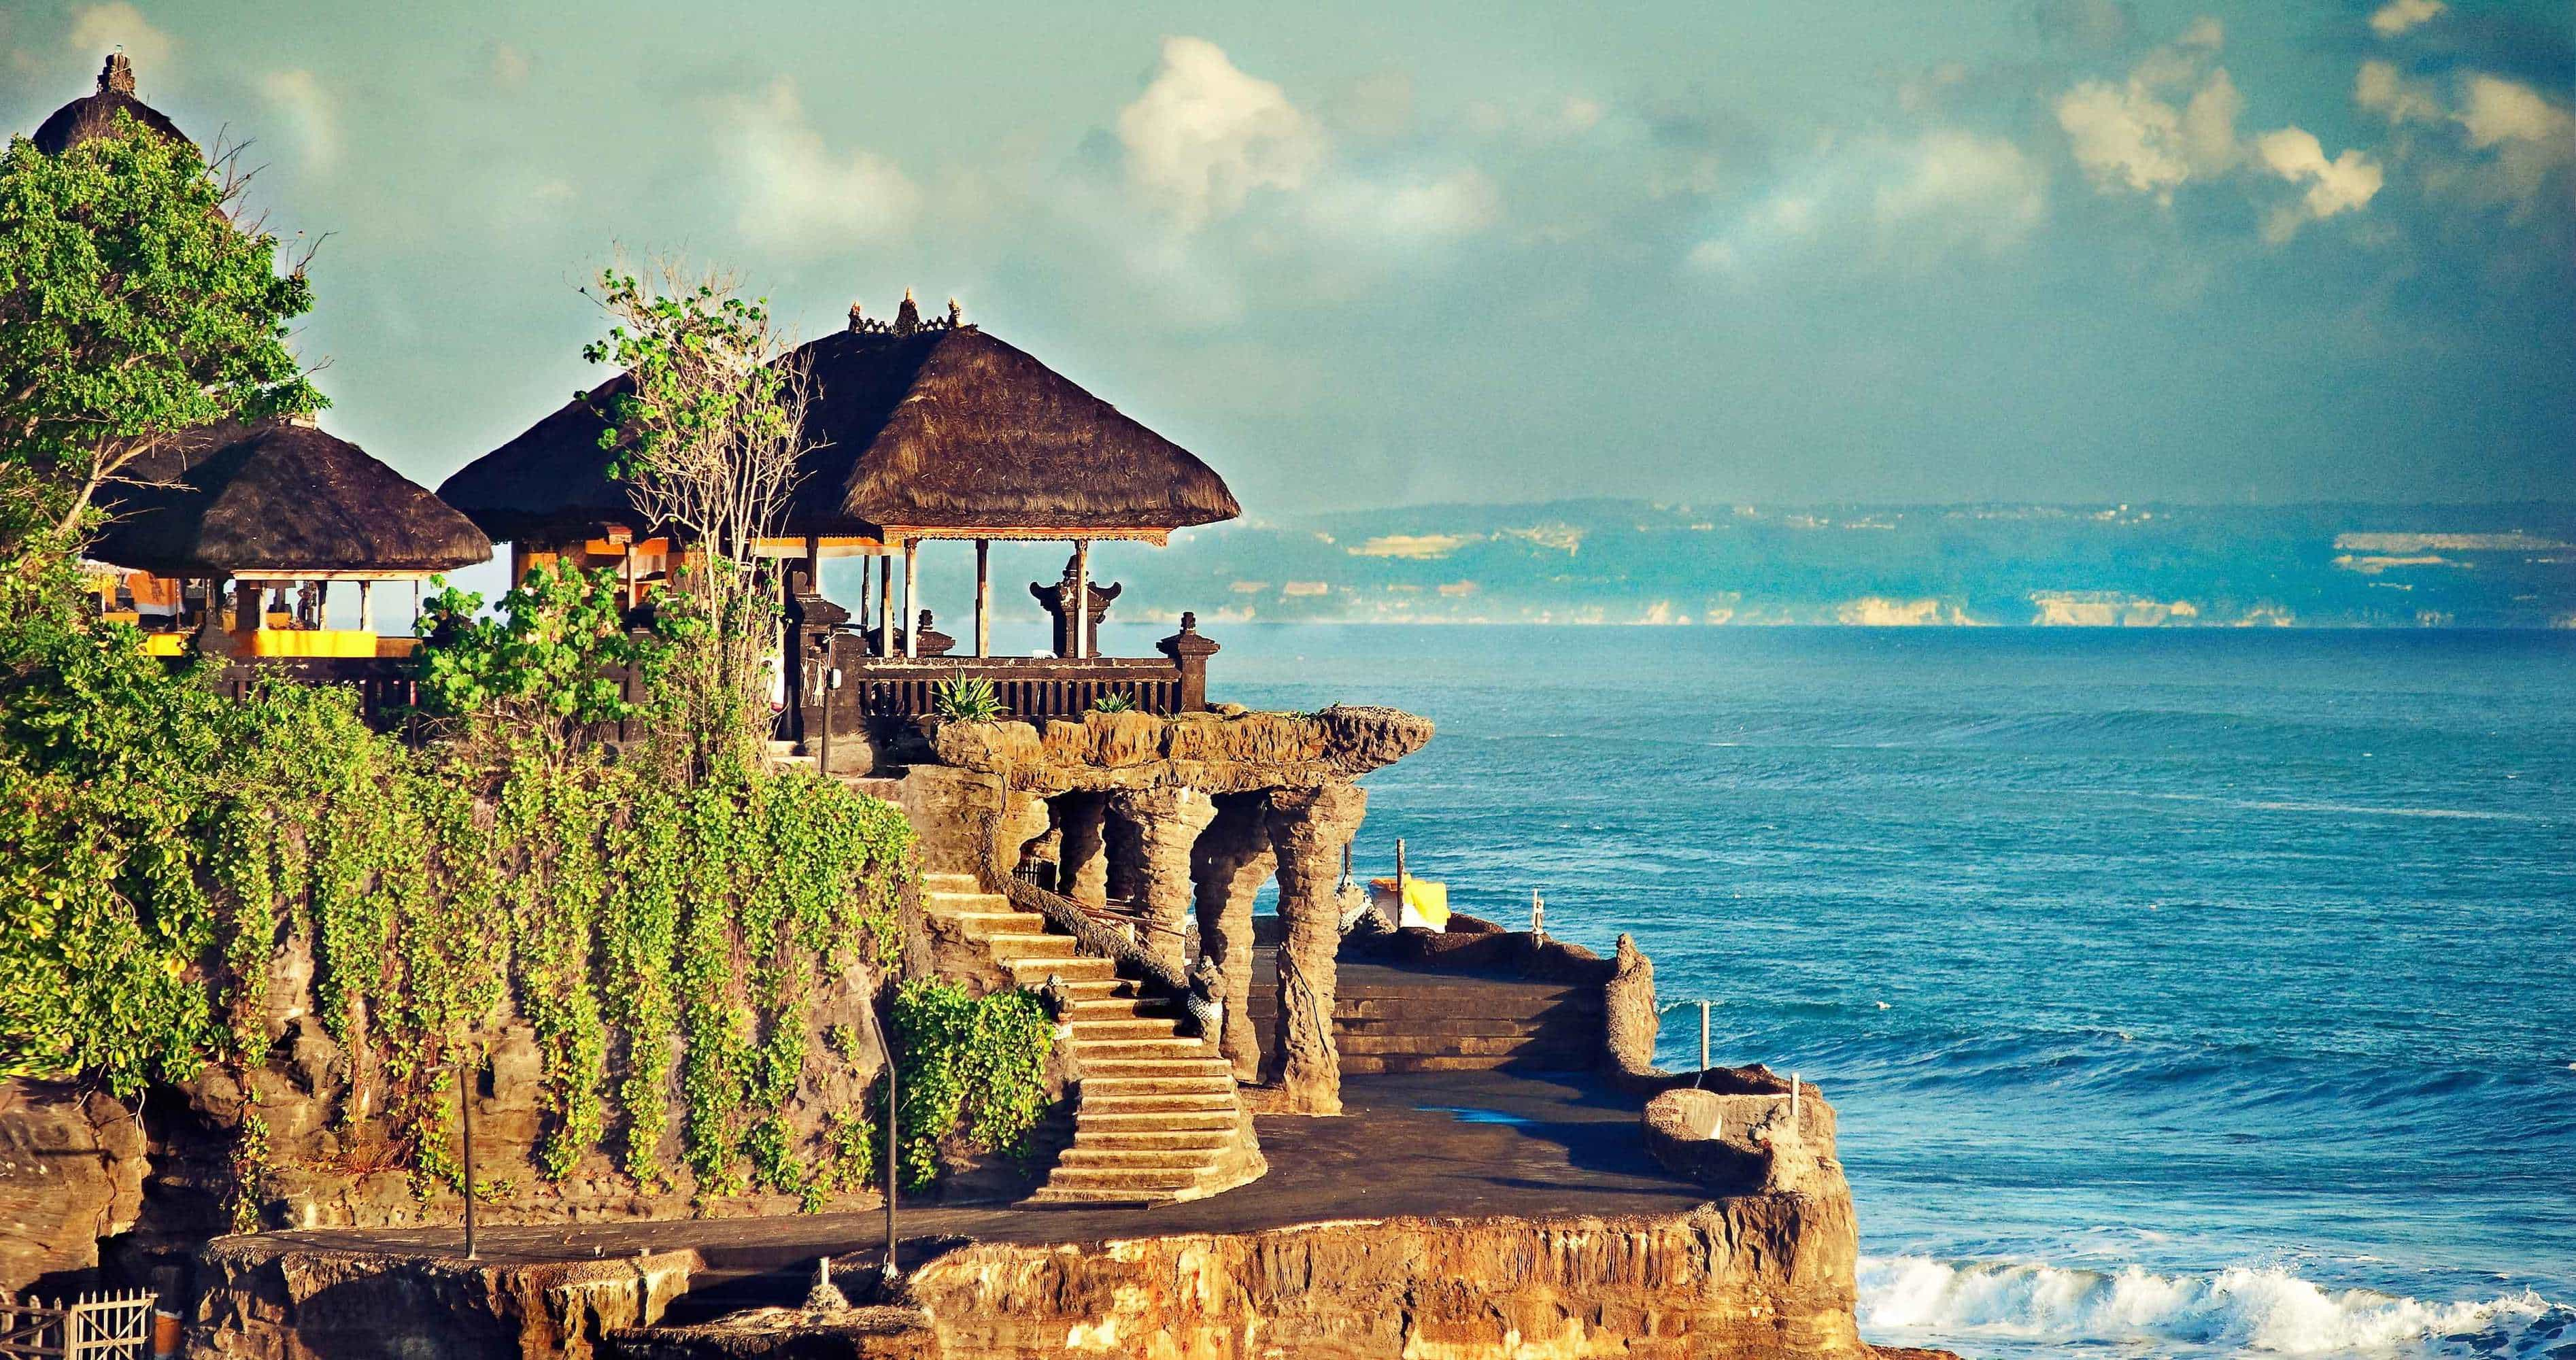 fondement bali temple tanah lot